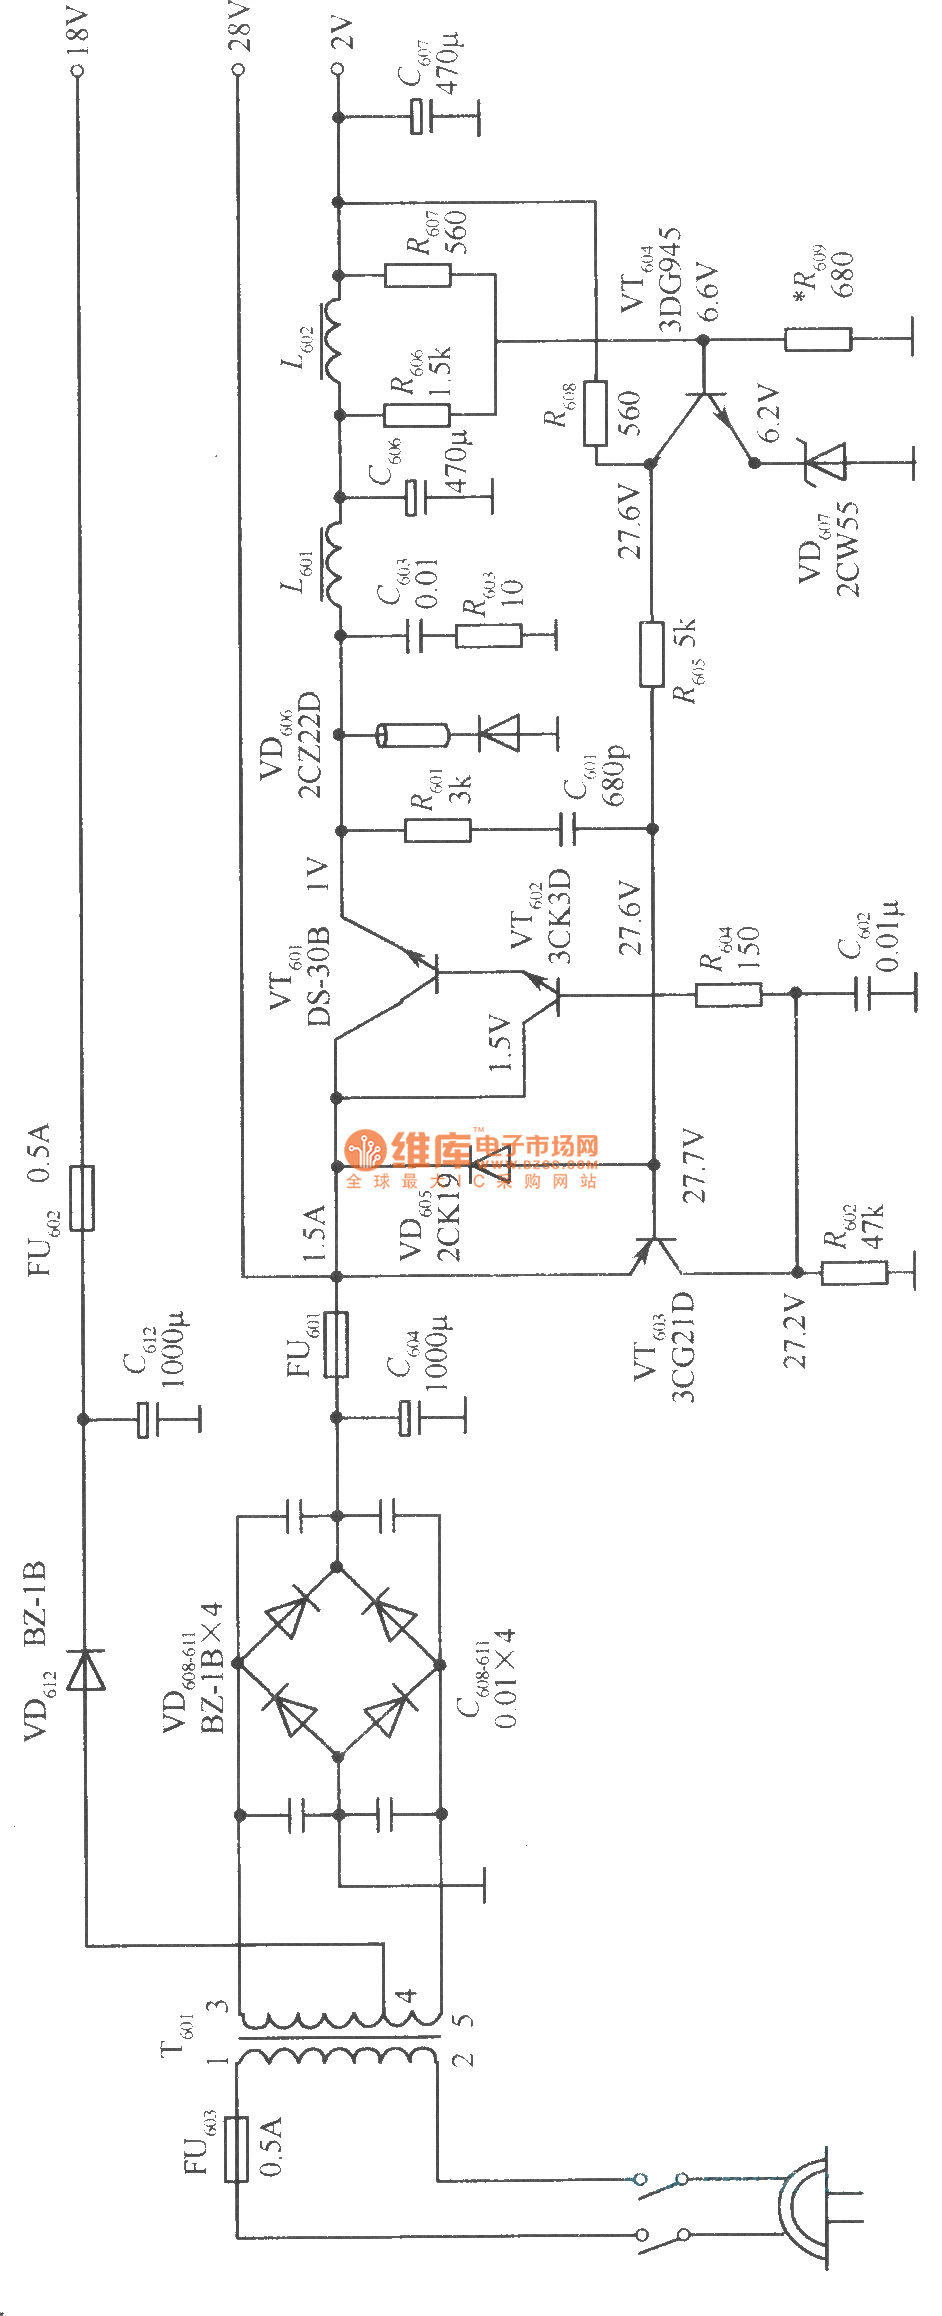 switching power supply of beijing brand black and white tv